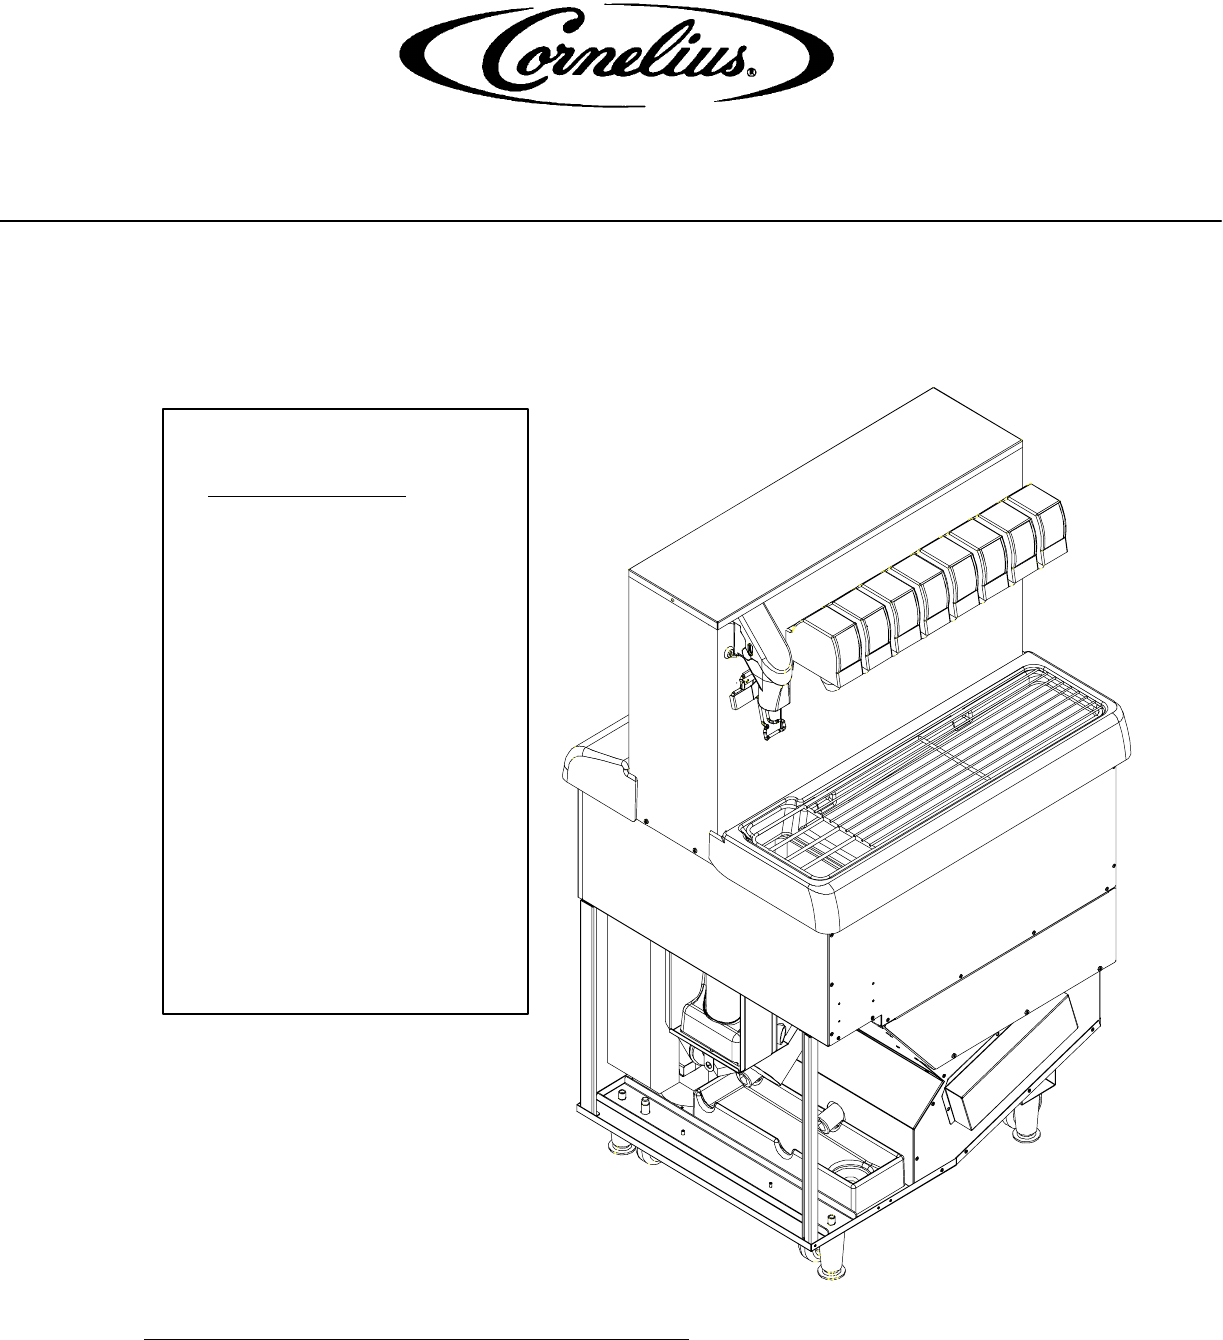 Cornelius Beverage Dispenser PR150 BC User Guide